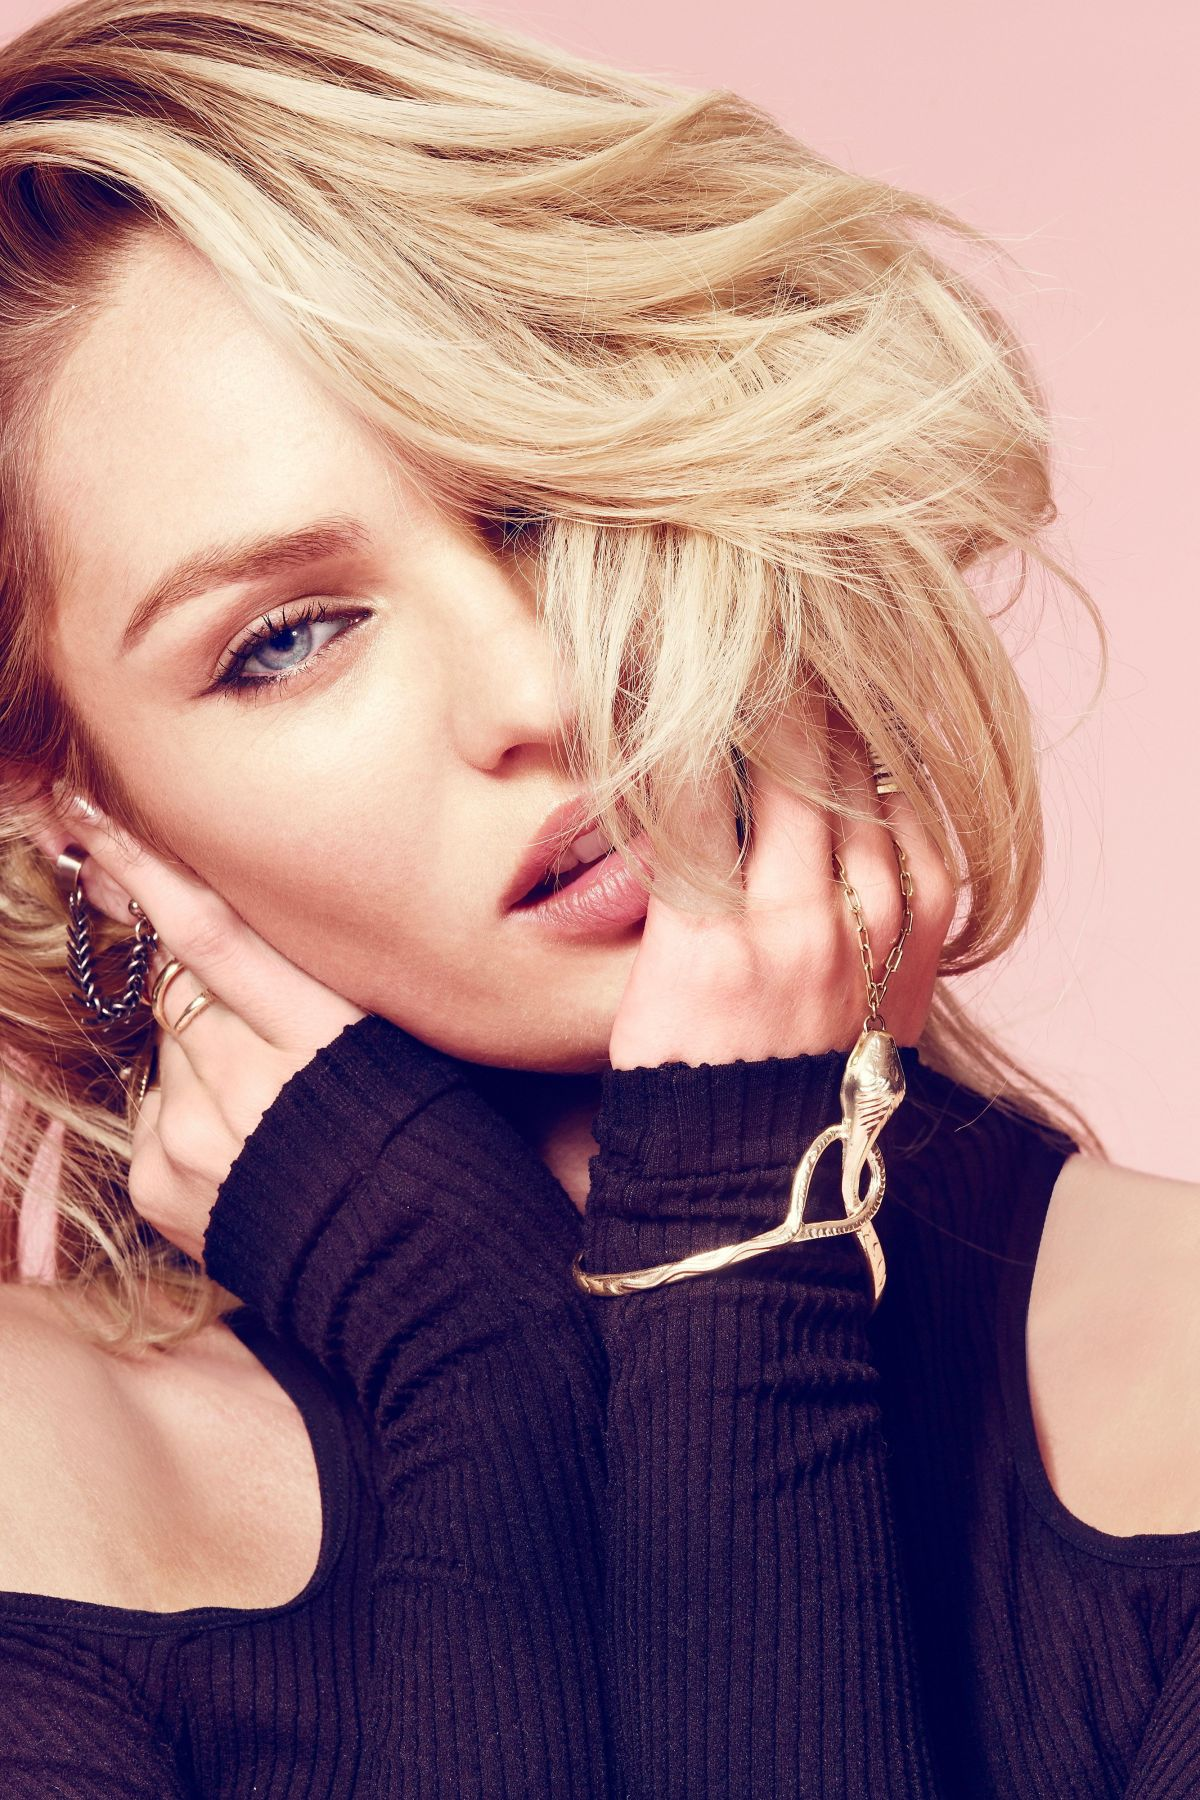 Candice Swanepoel At Free People July 2014 Catalog